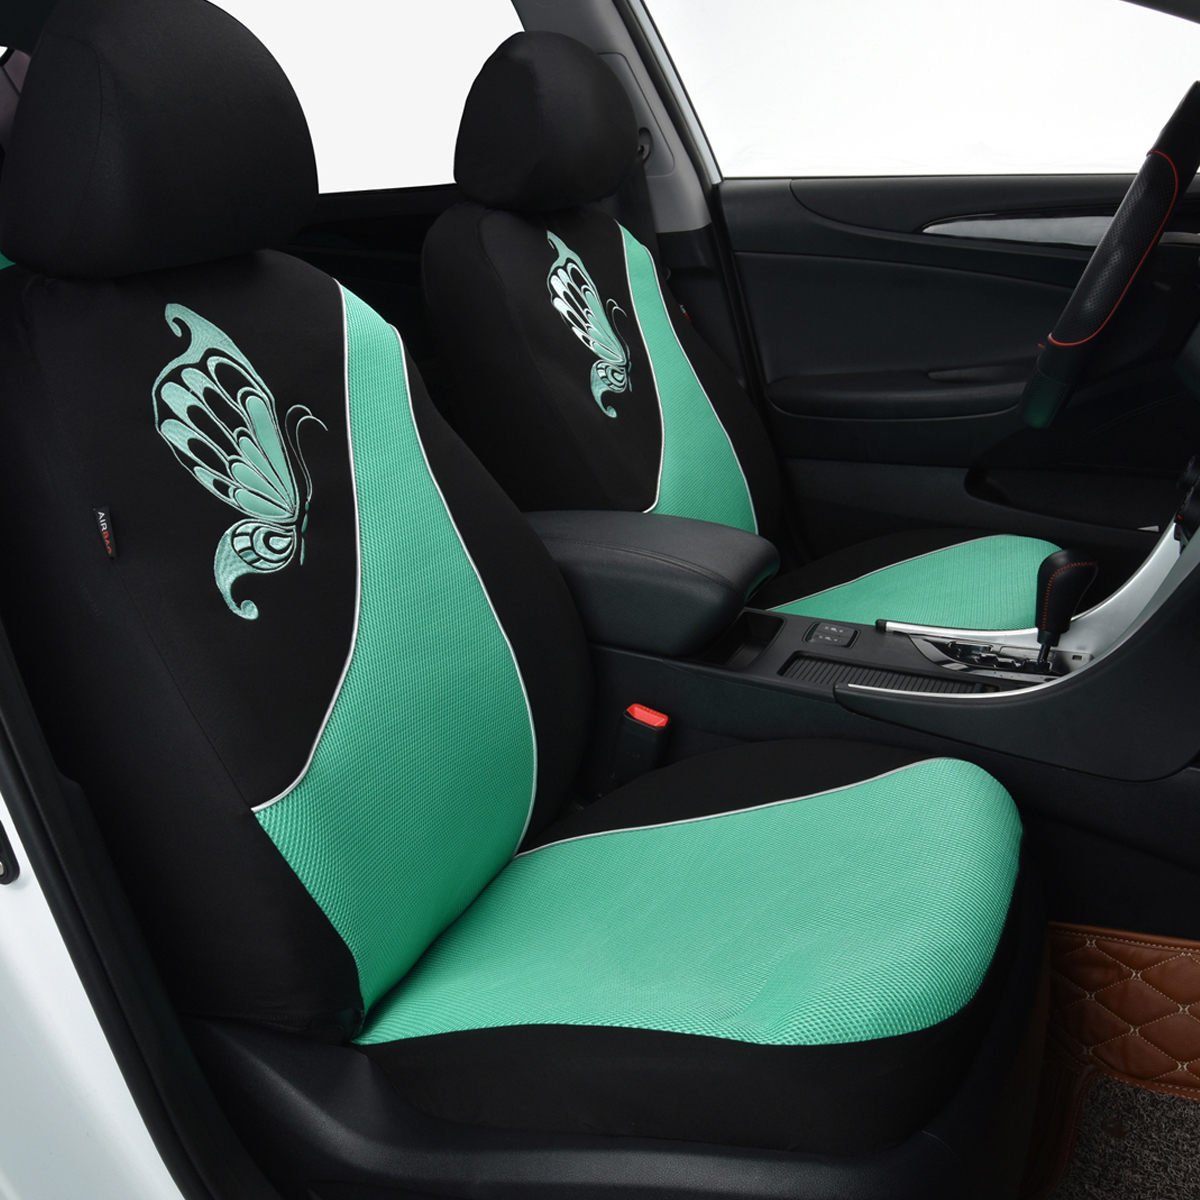 Car Bench Seat Covers >> NEW Car Seat Covers set low back Universal Flying banner Breathable mint blue 712190765712   eBay